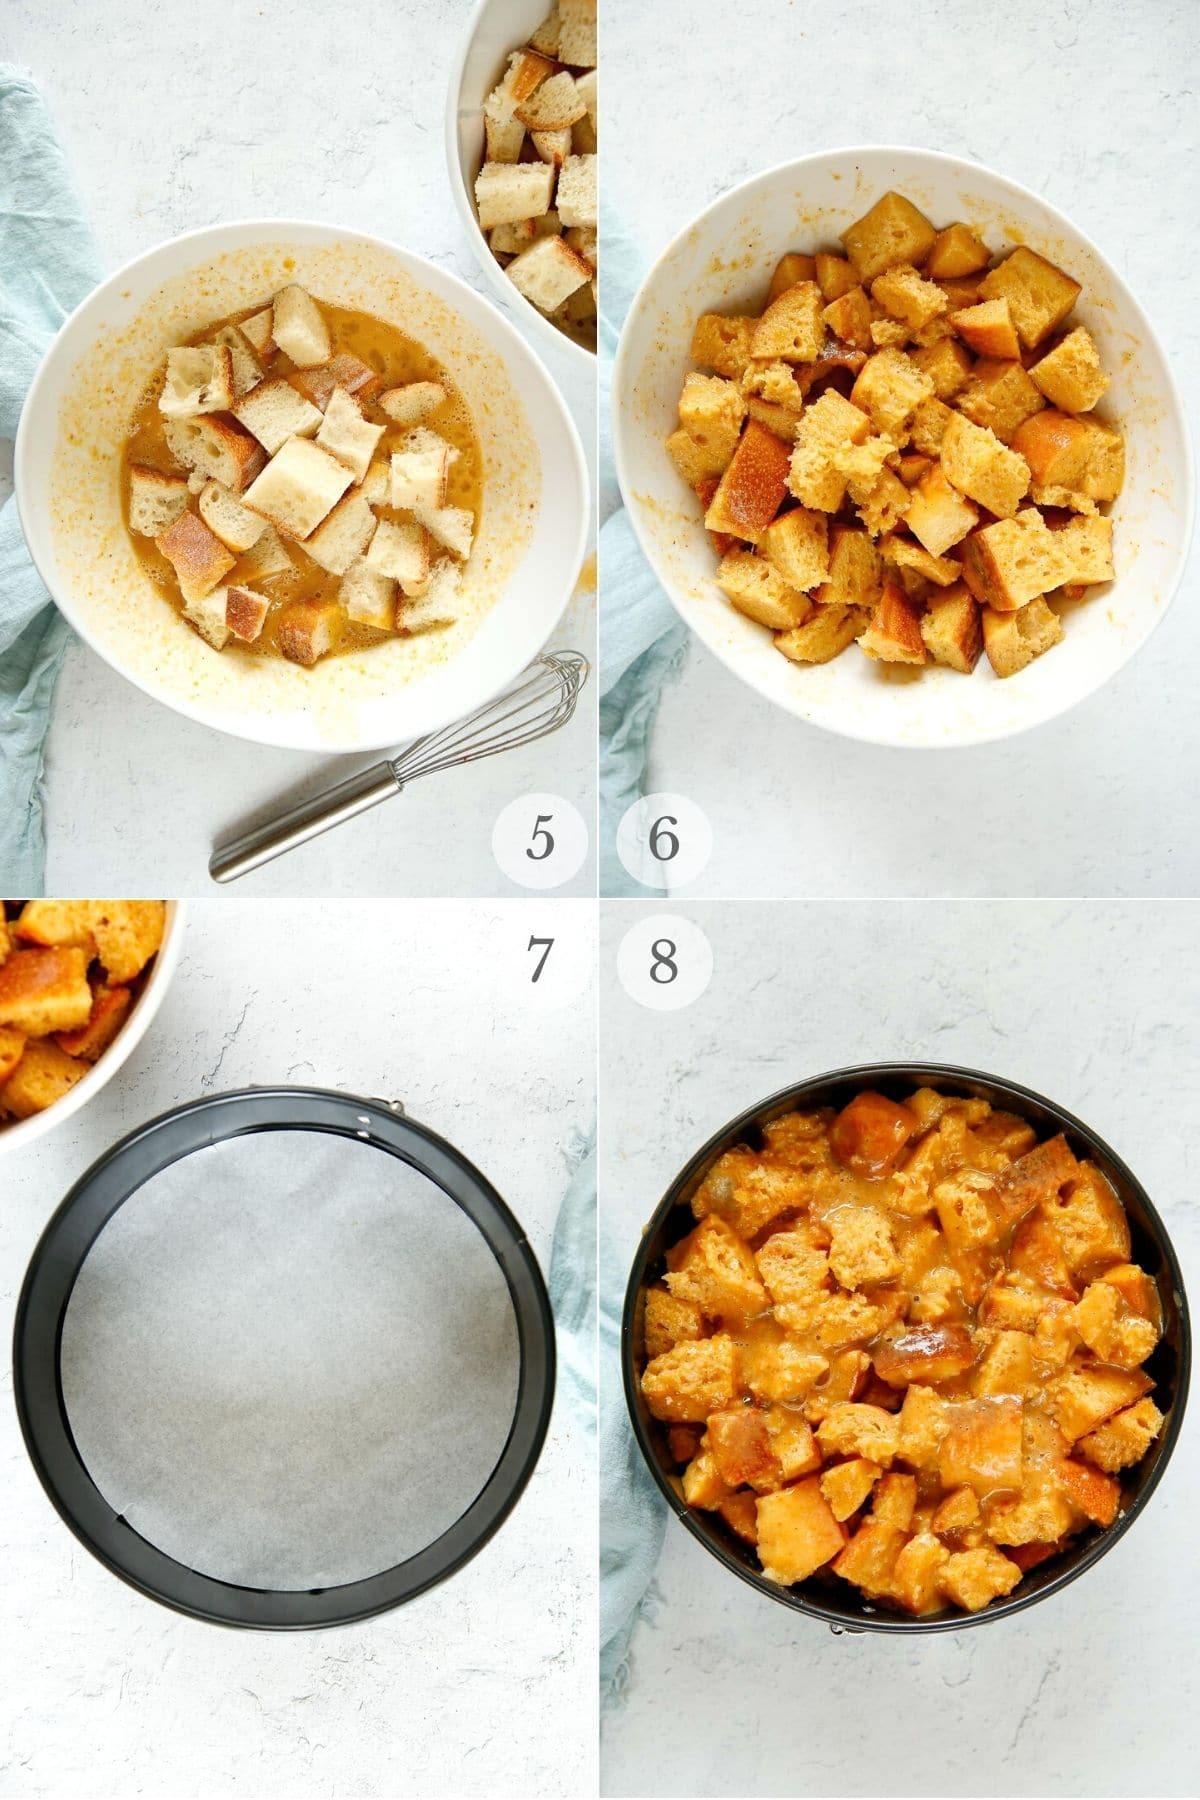 Pumpkin French Toast Casserole (Instant Pot) recipe steps 5-8